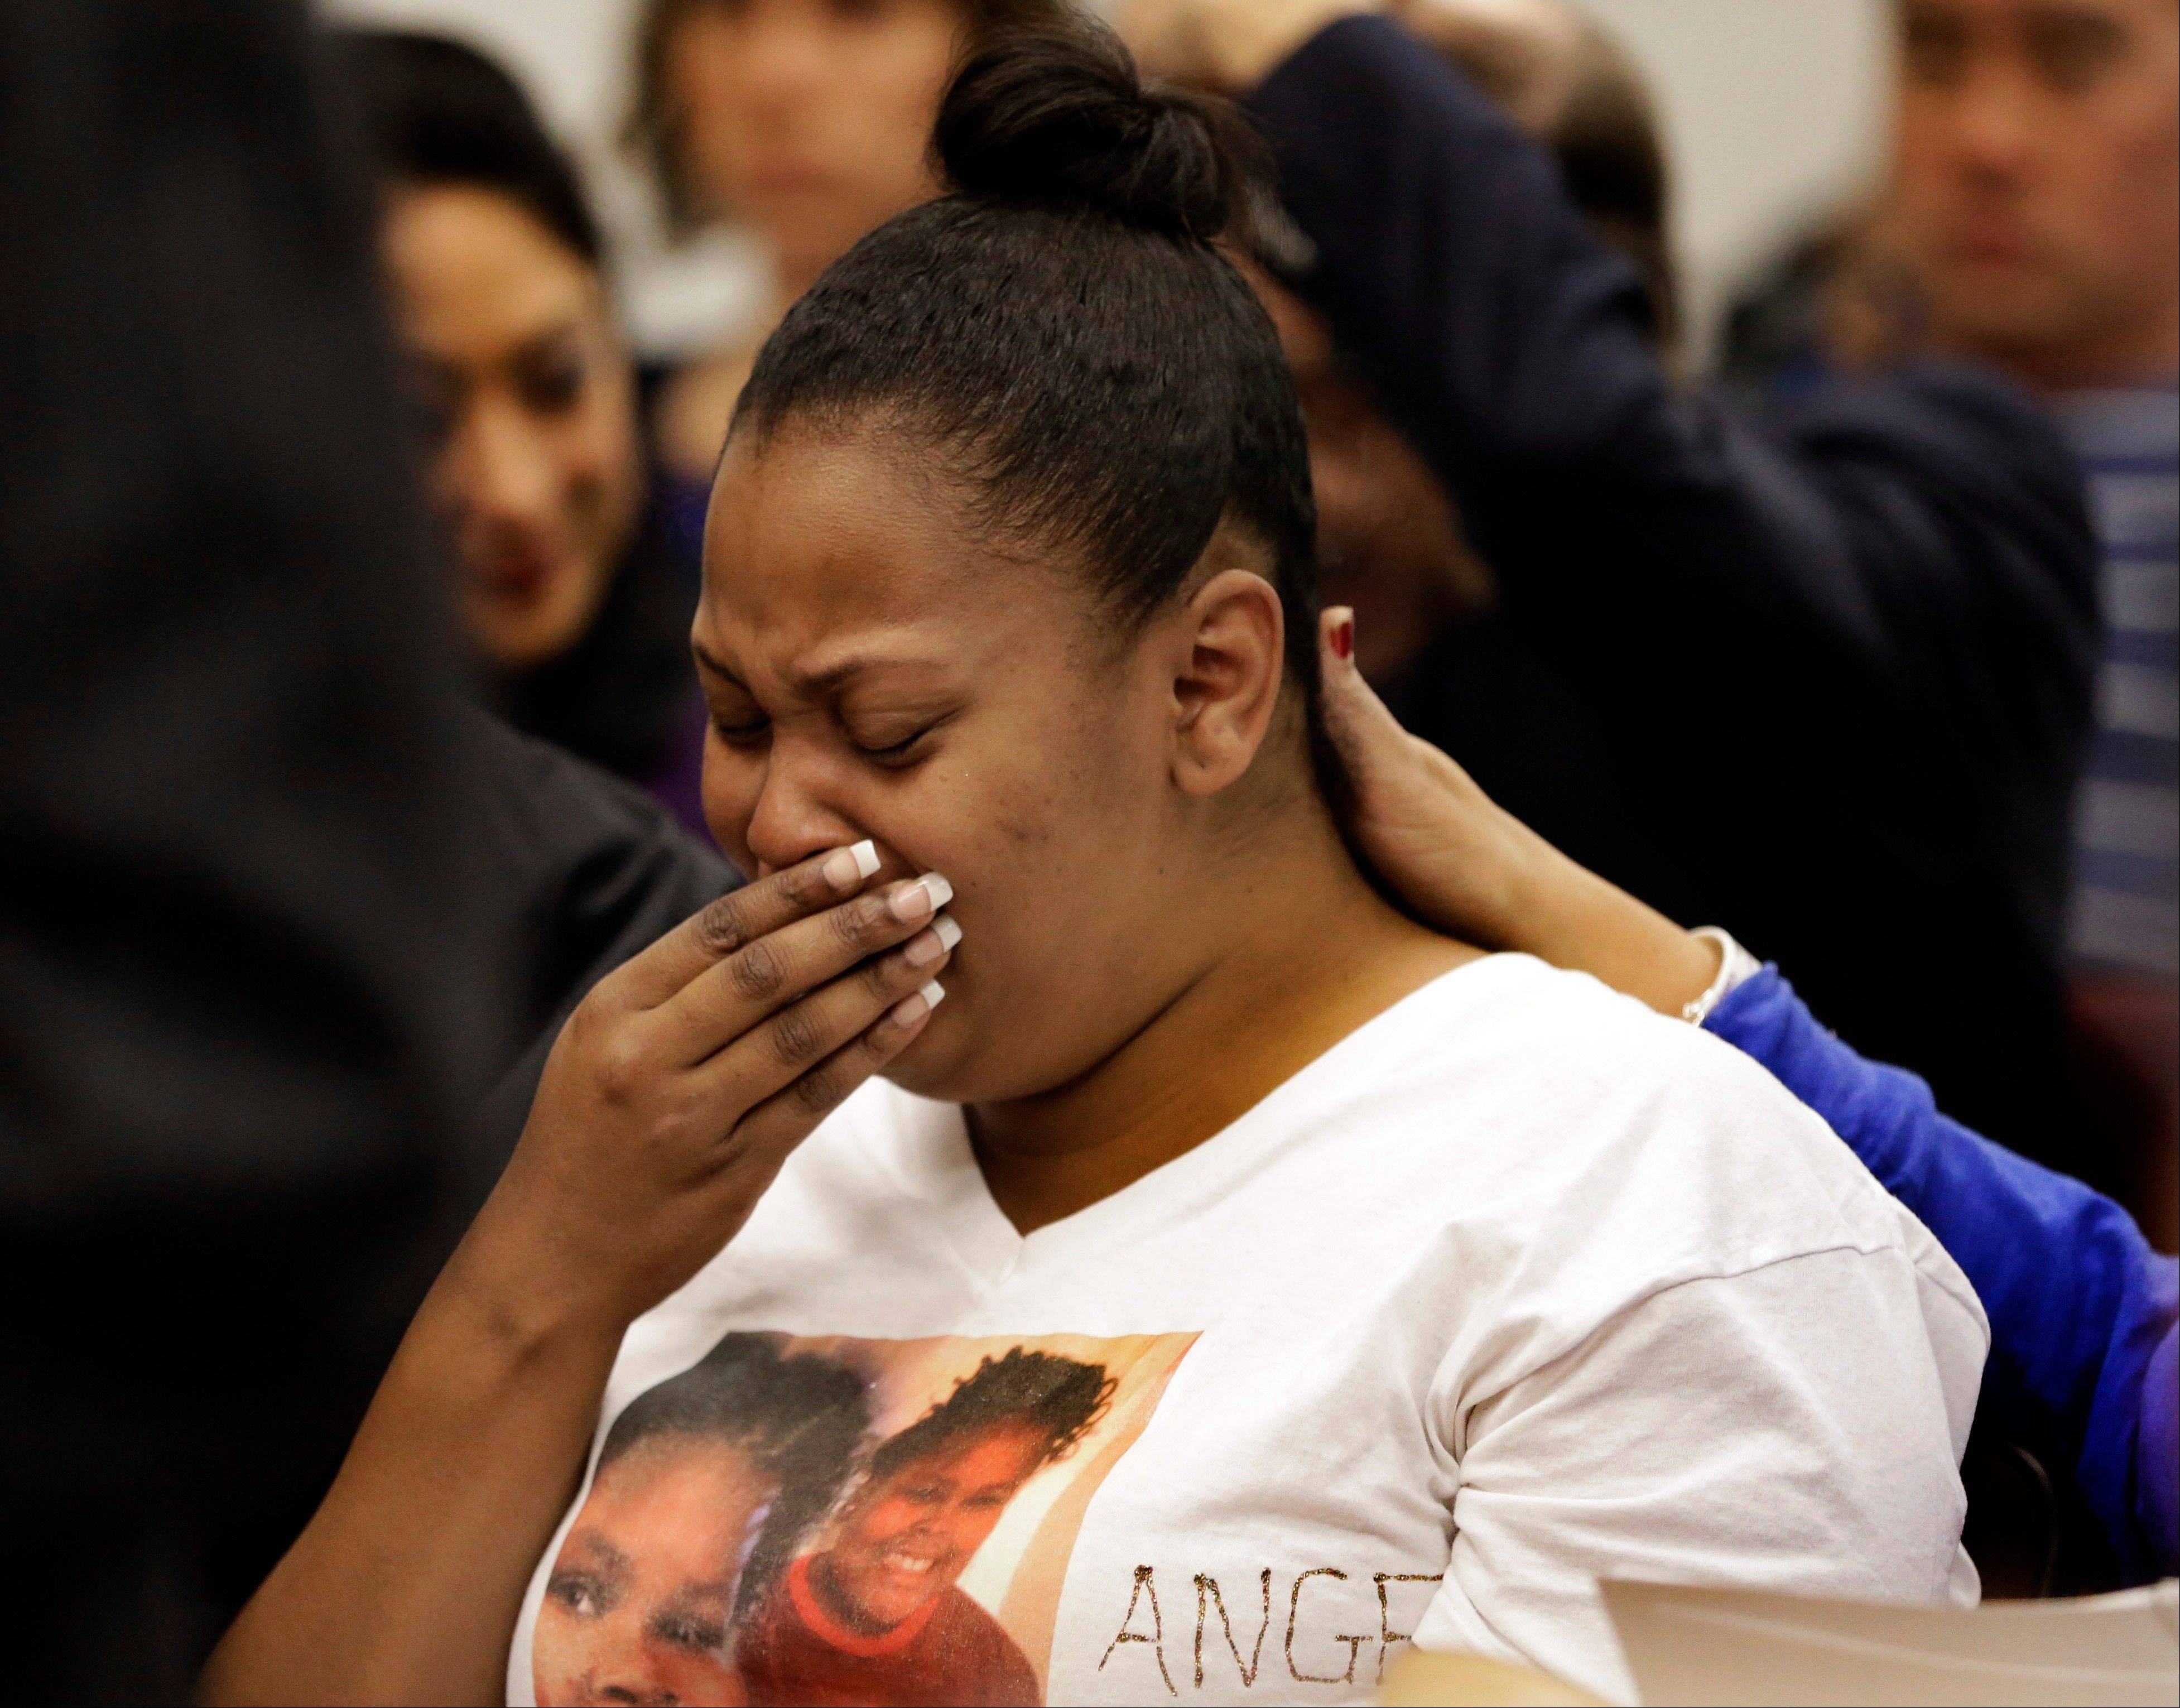 Nailah Winkfield, mother of 13-year-old Jahi McMath, cries before a courtroom hearing Friday regarding McMath, in Oakland, Calif. McMath remains on life support at Children's Hospital Oakland nearly a week after doctors declared her brain dead.